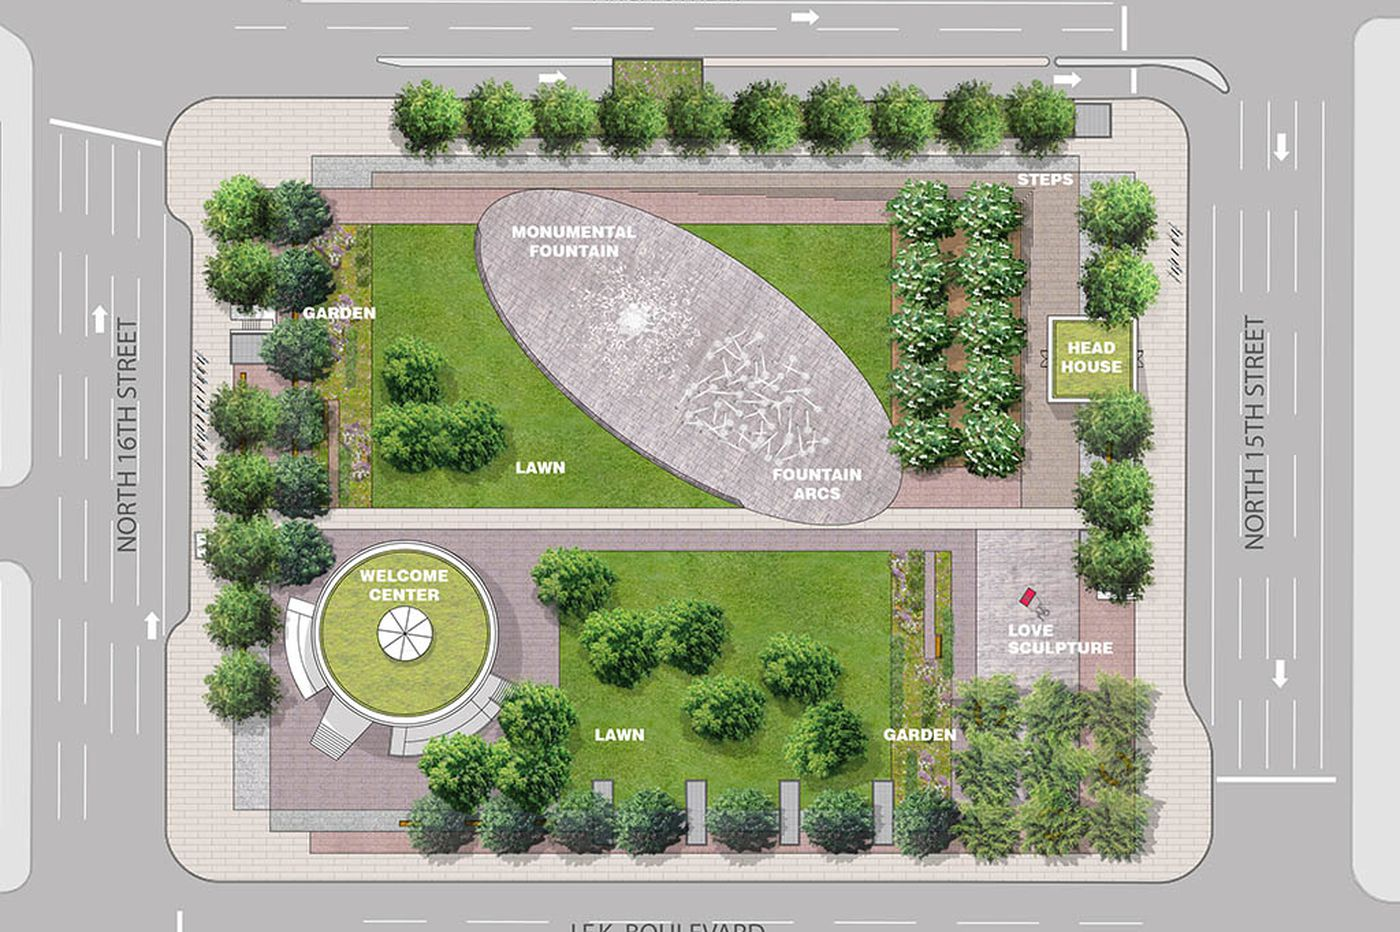 A bold new vision for LOVE Park